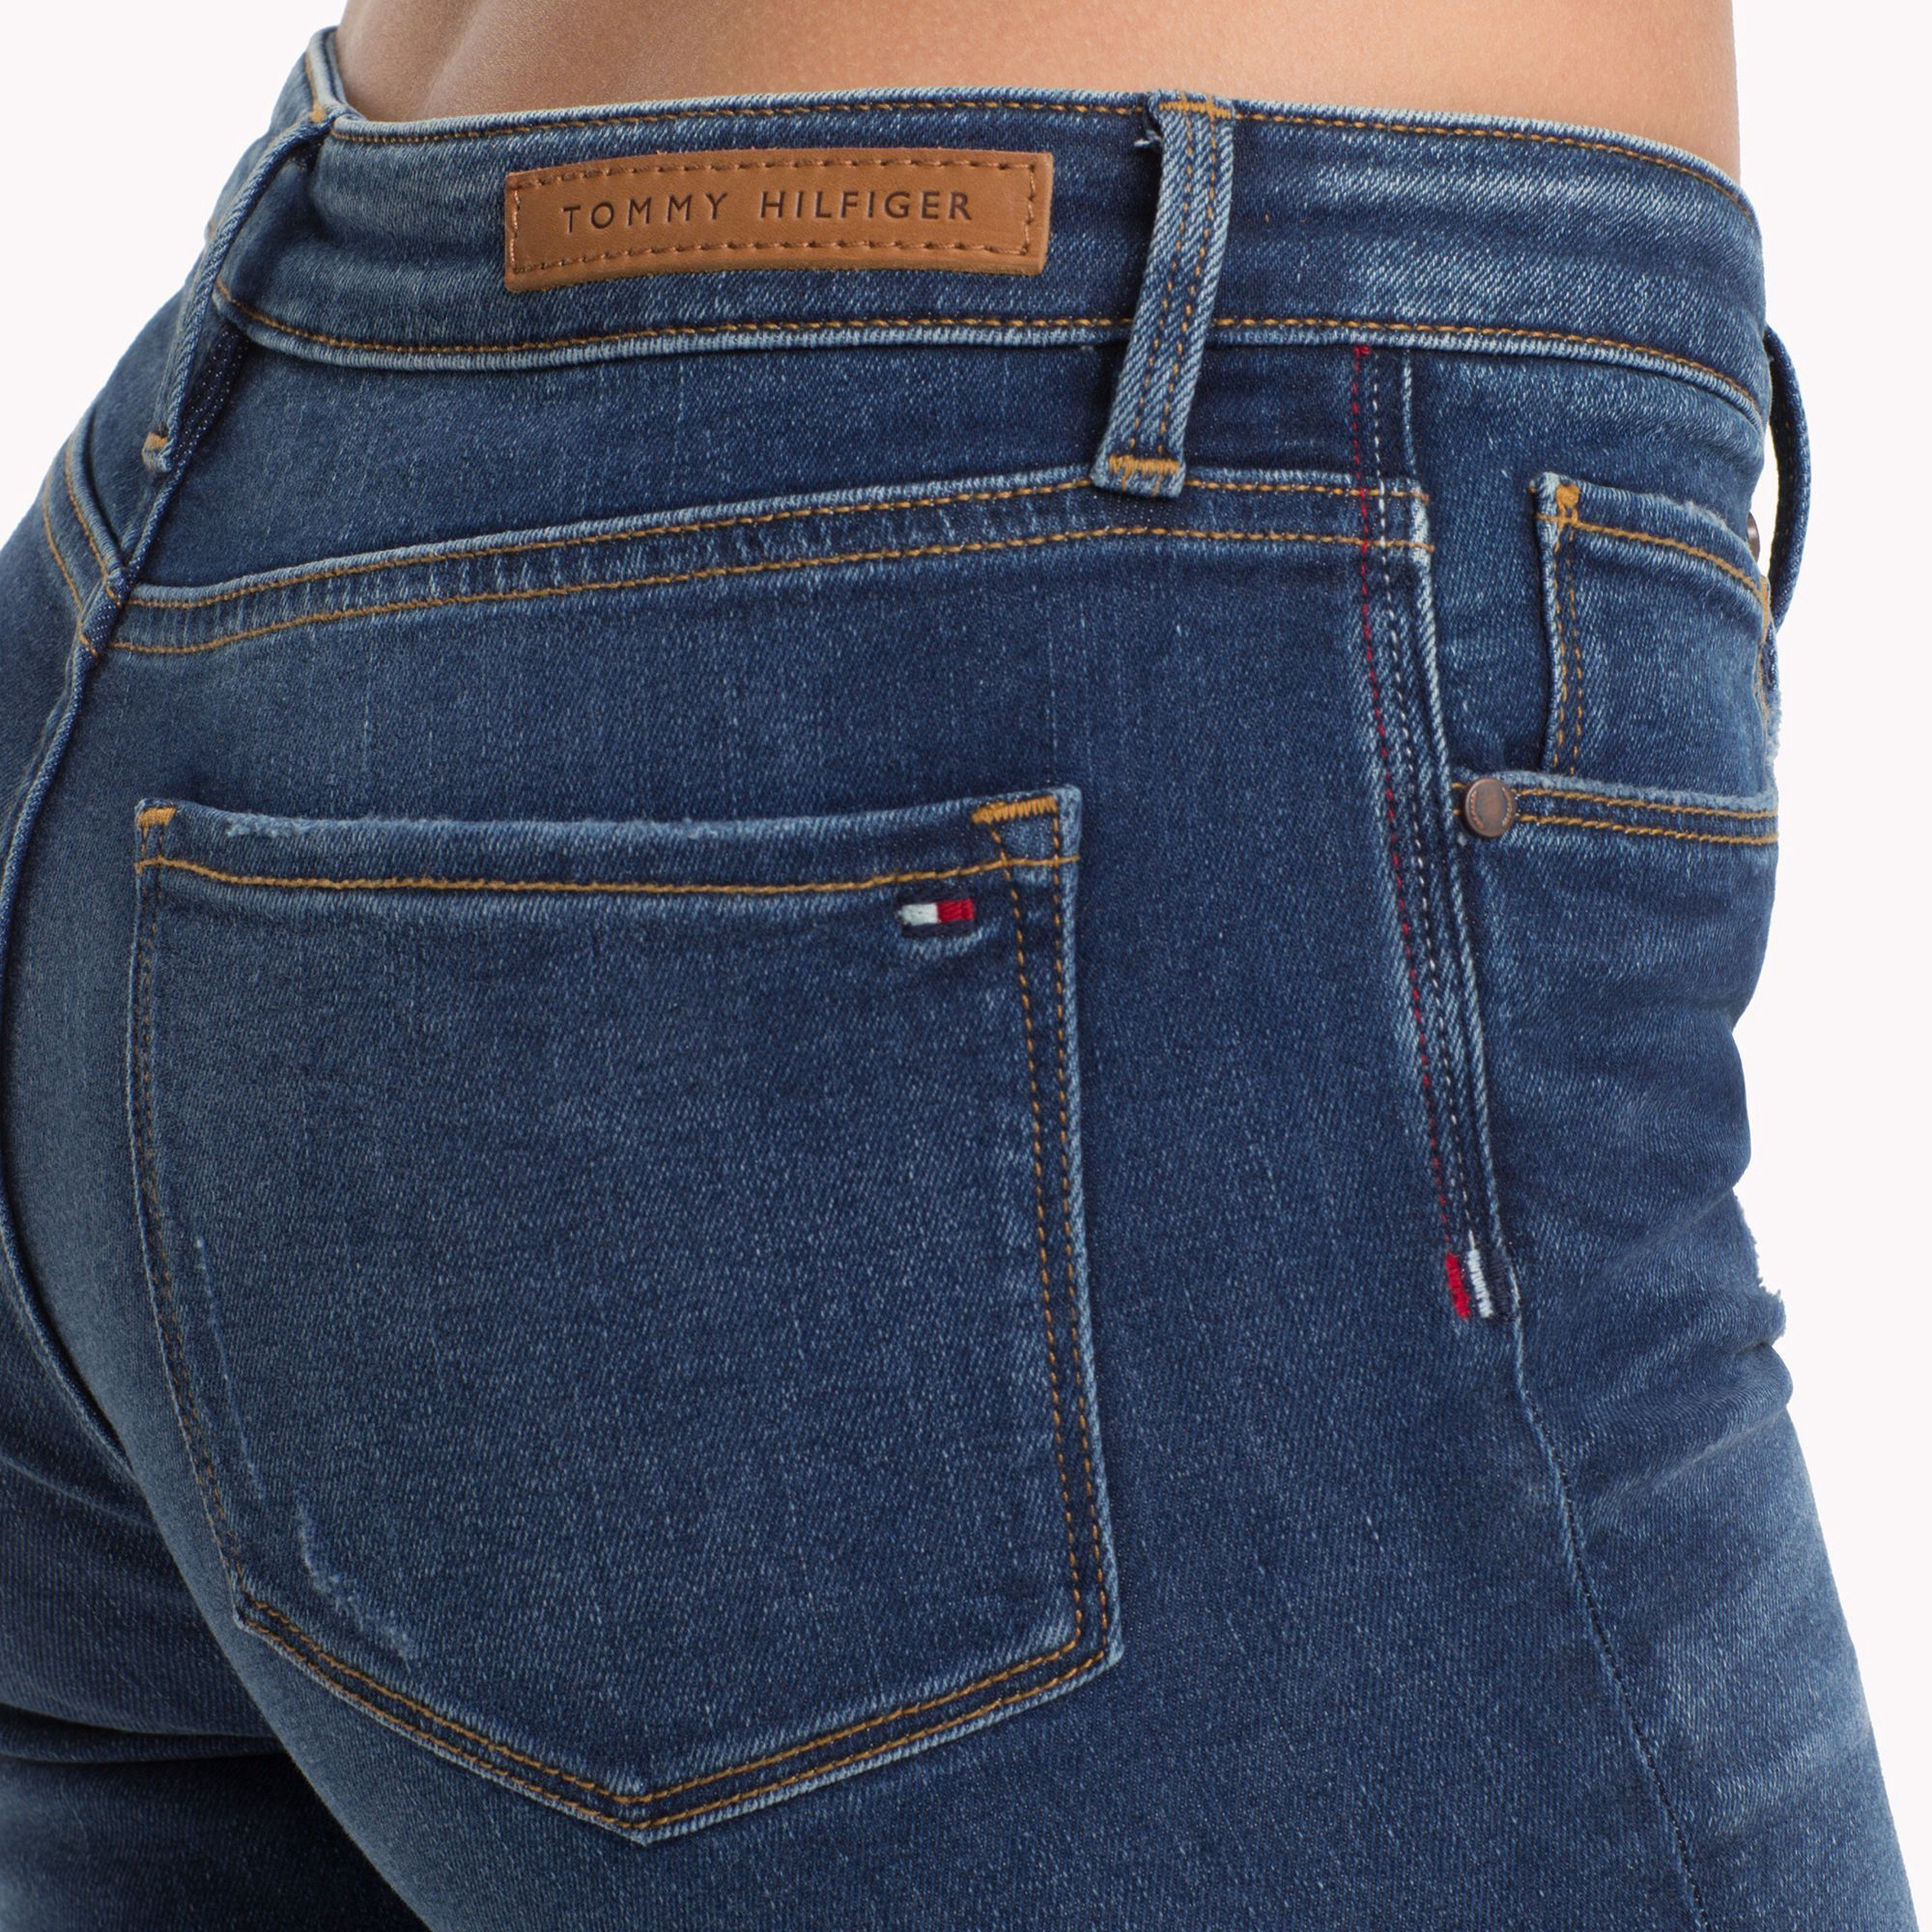 34eae5f9d Tommy Hilfiger Distressed Jegging Fit Jean - 27 in 2019 | Products ...